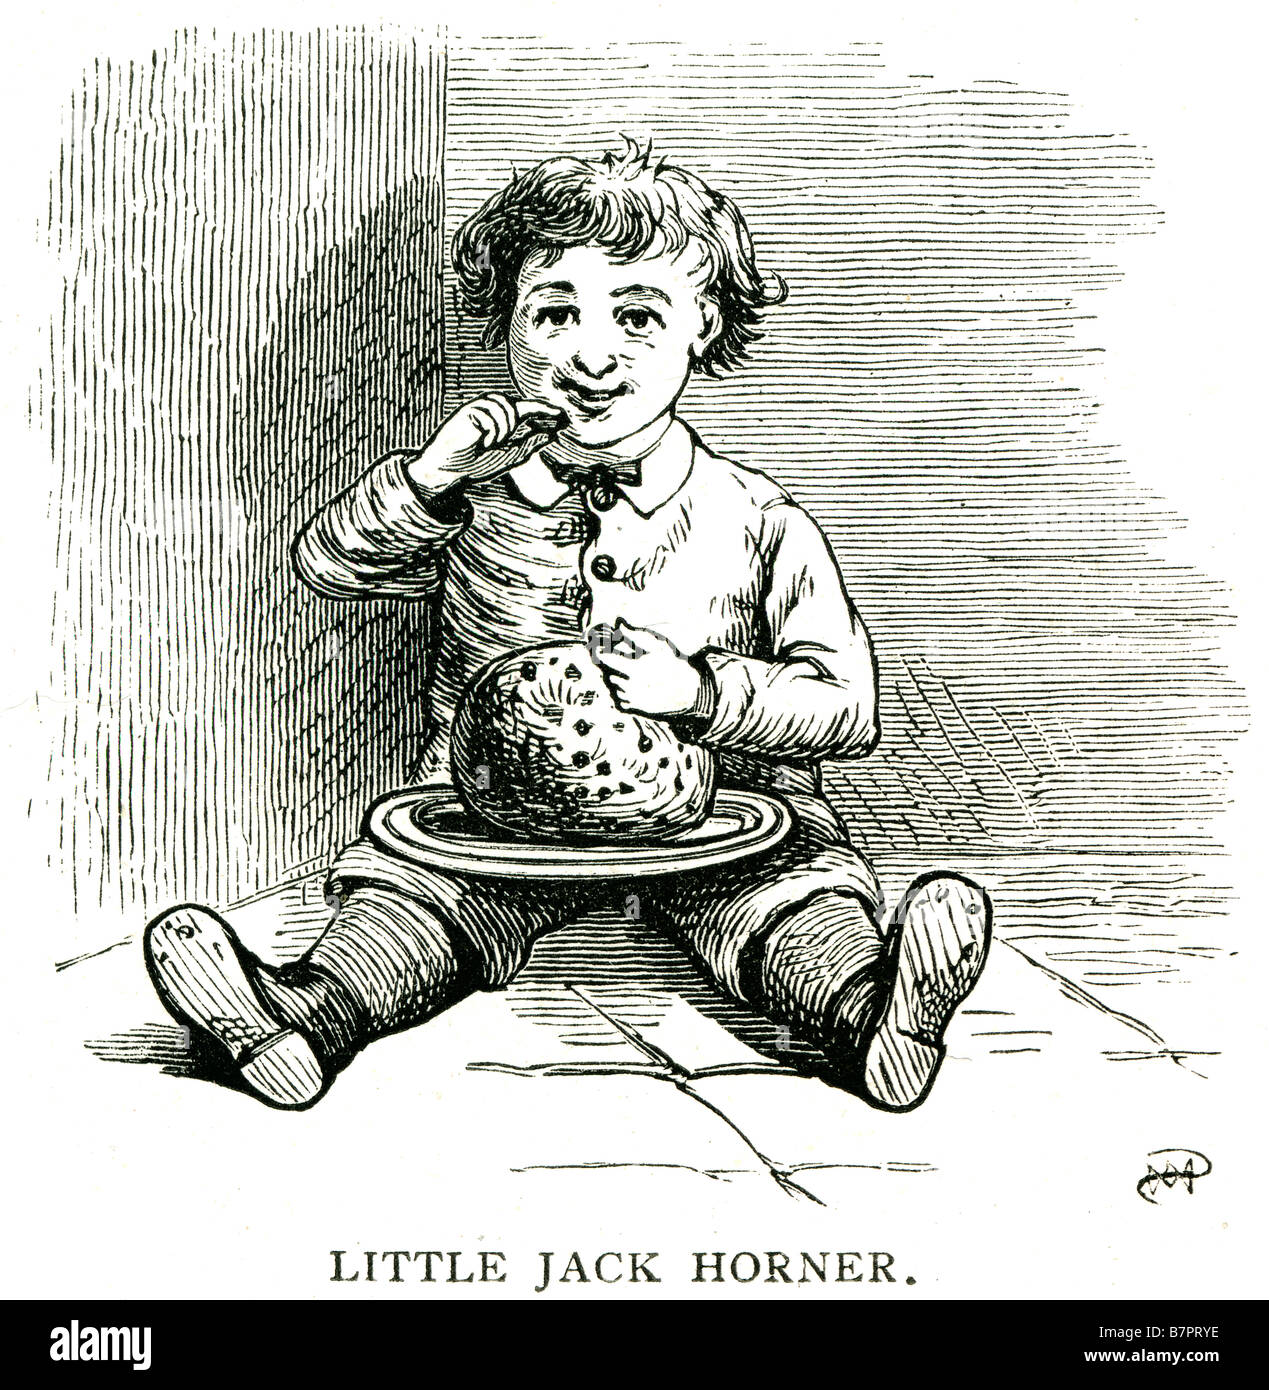 Little Jack Horner Nursery Rhyme Little Jack Horner is a nursery rhyme. It has the Roud Folk Song Index number of - Stock Image